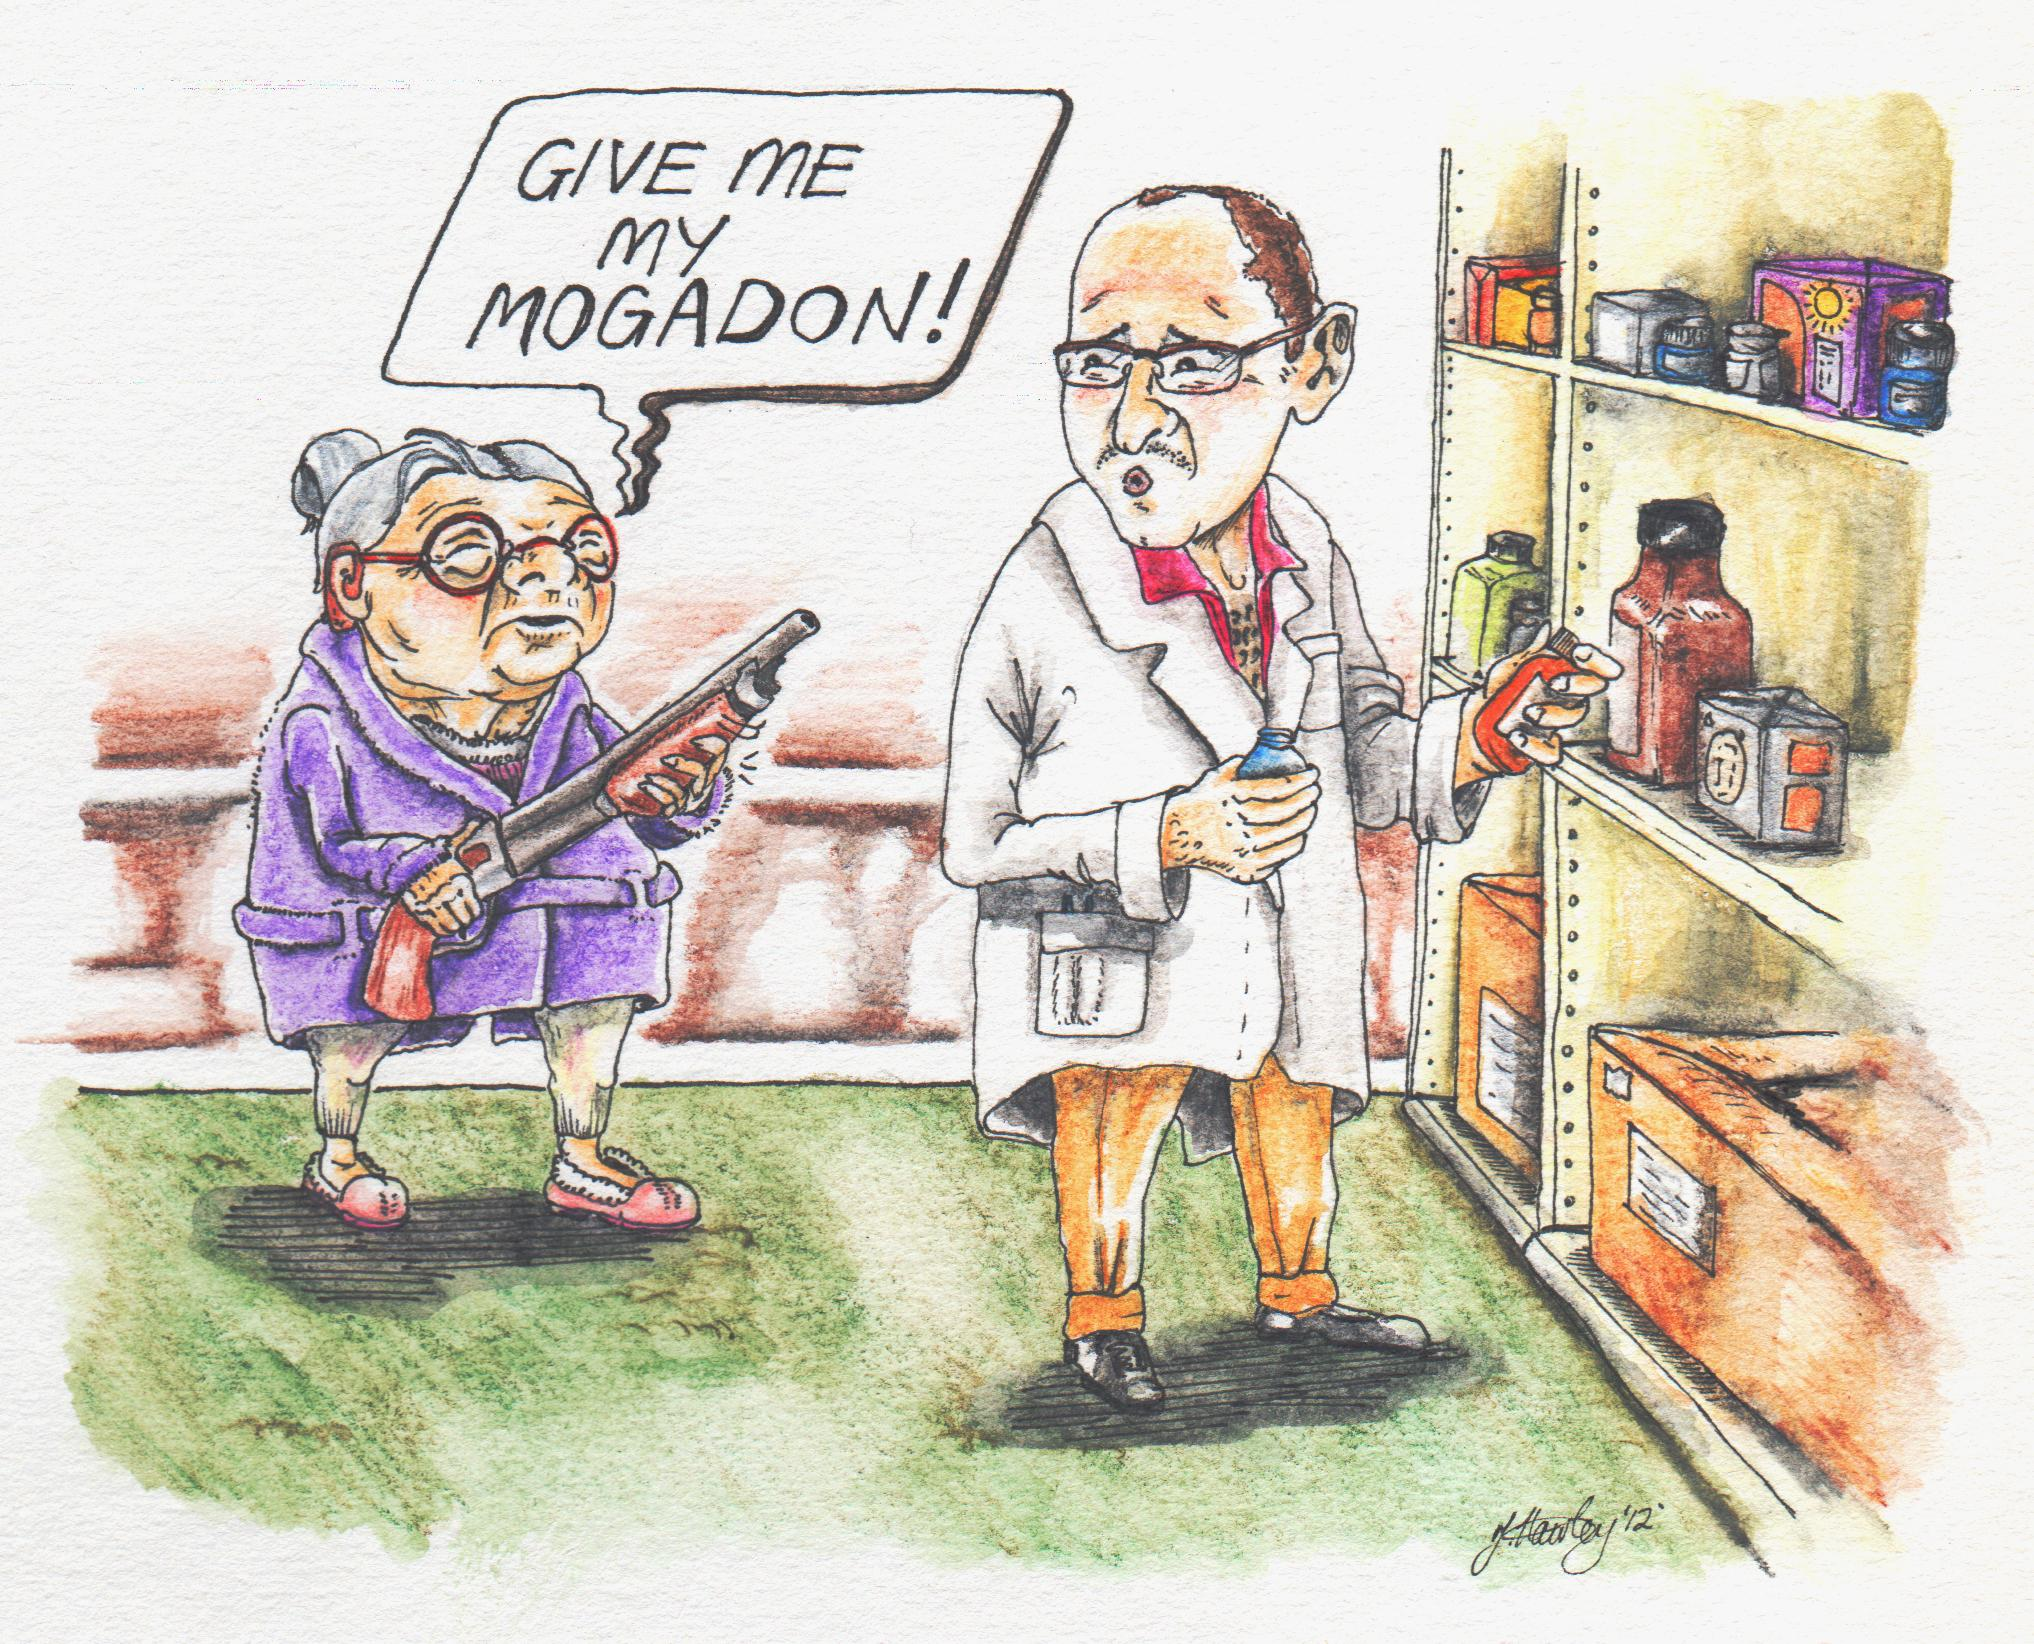 Mogadon Granny. Nitrazepam, marketed as Mogadon, is used for insomnia yet has the potential to be abused by users. It is used by the elderly, but its paralysing effects last over night and can result in the elderly falling and breaking hips.